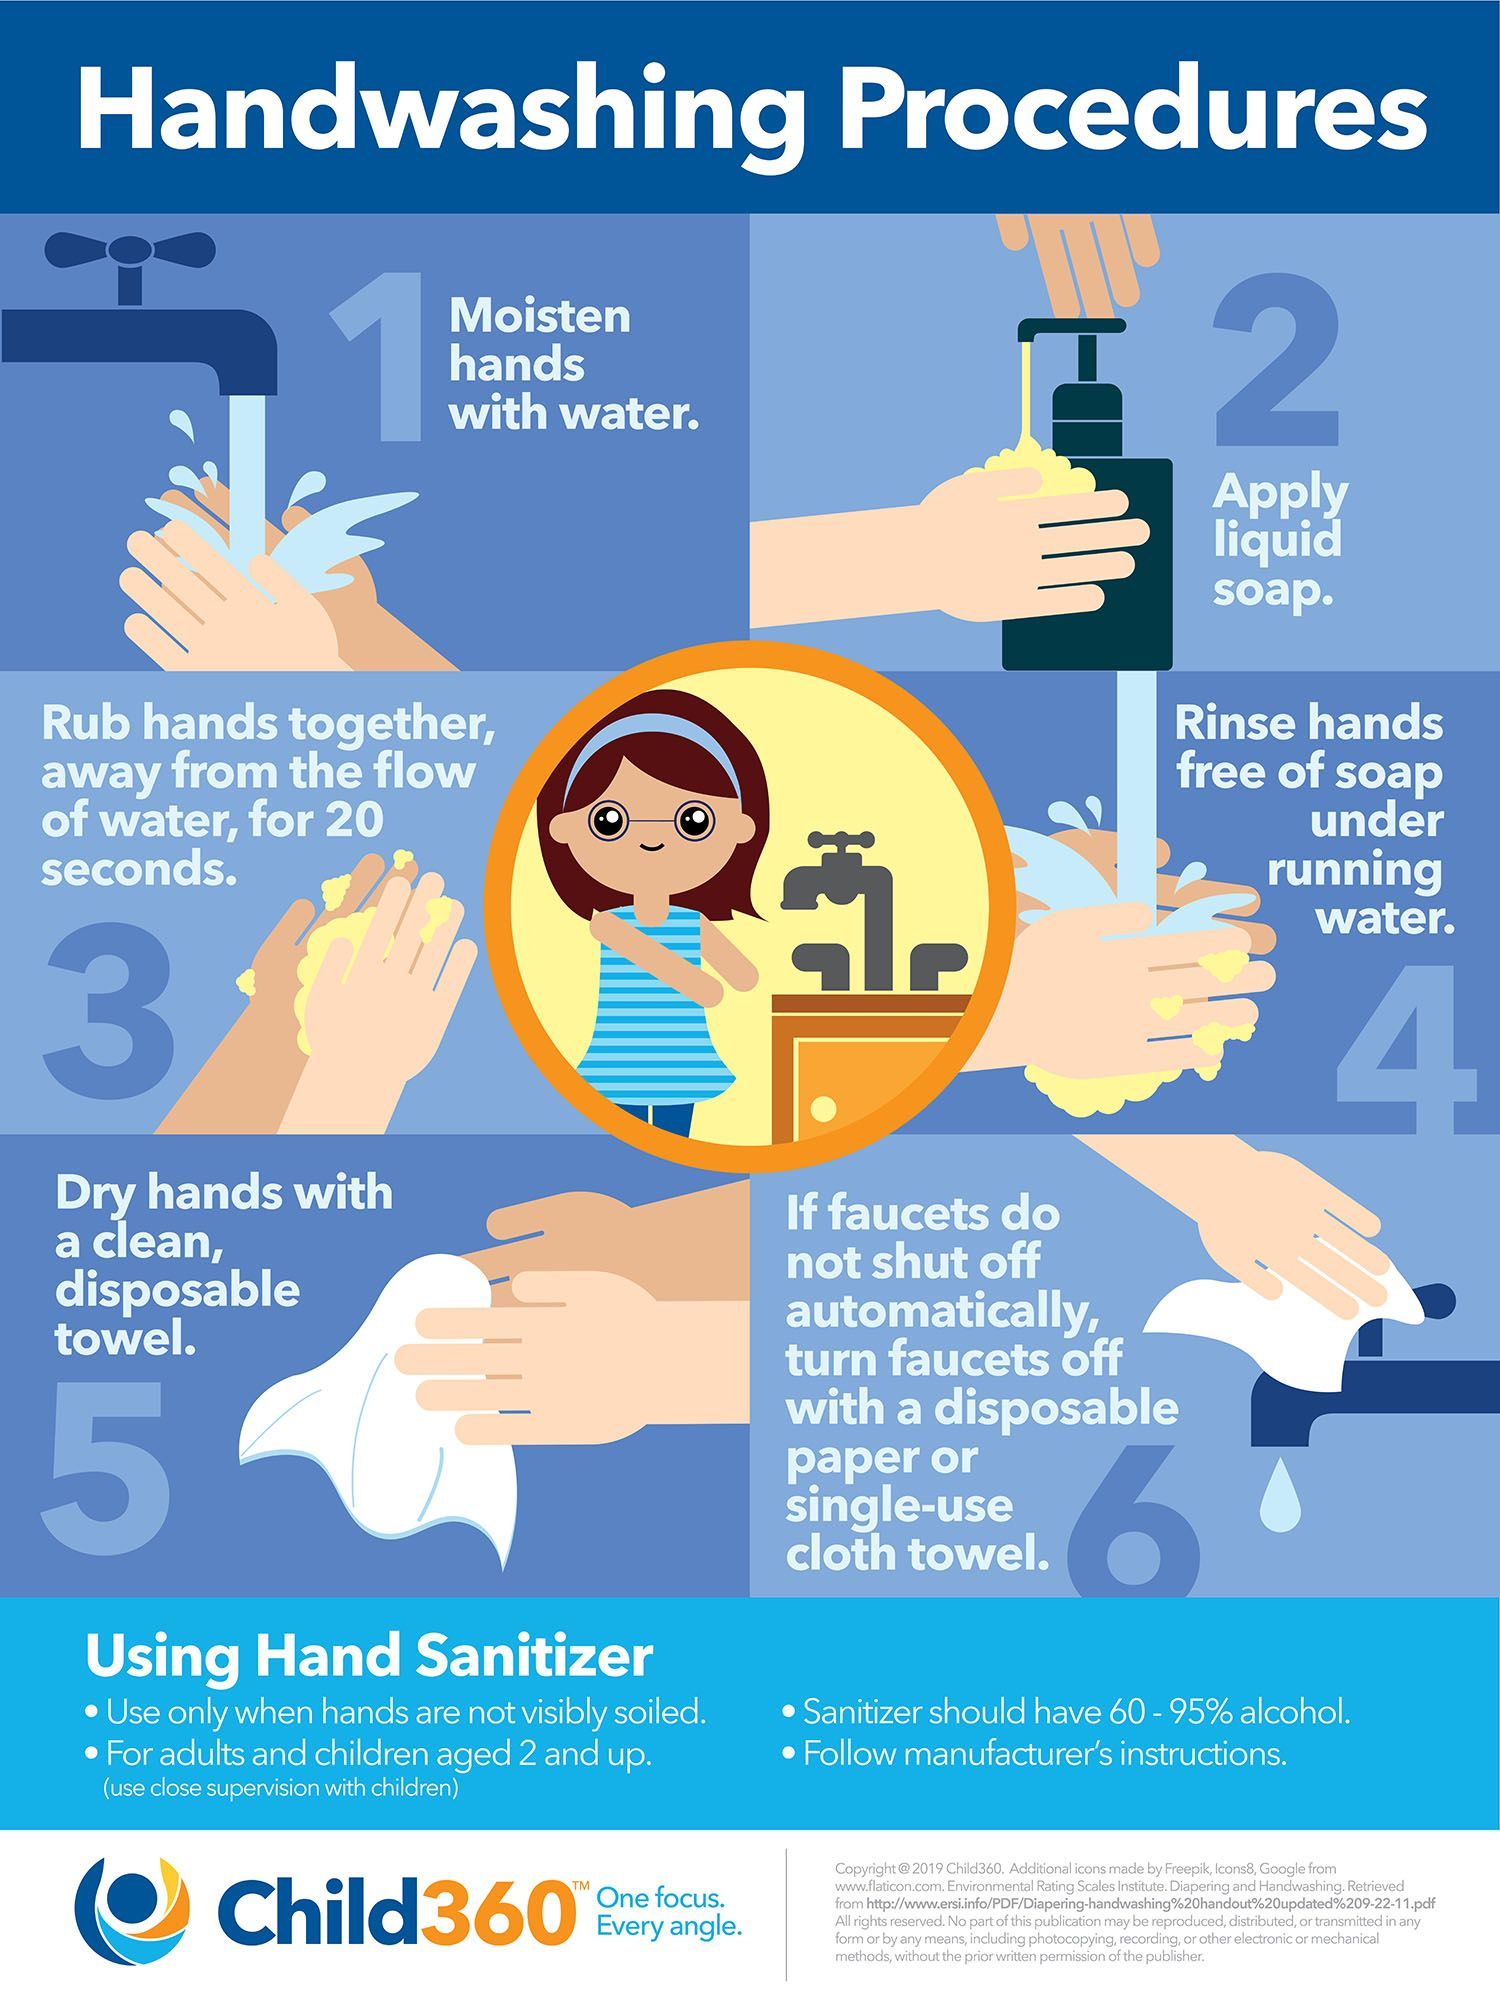 Handwashing Procedures In 2020 Health And Safety Dry Hands How To Apply